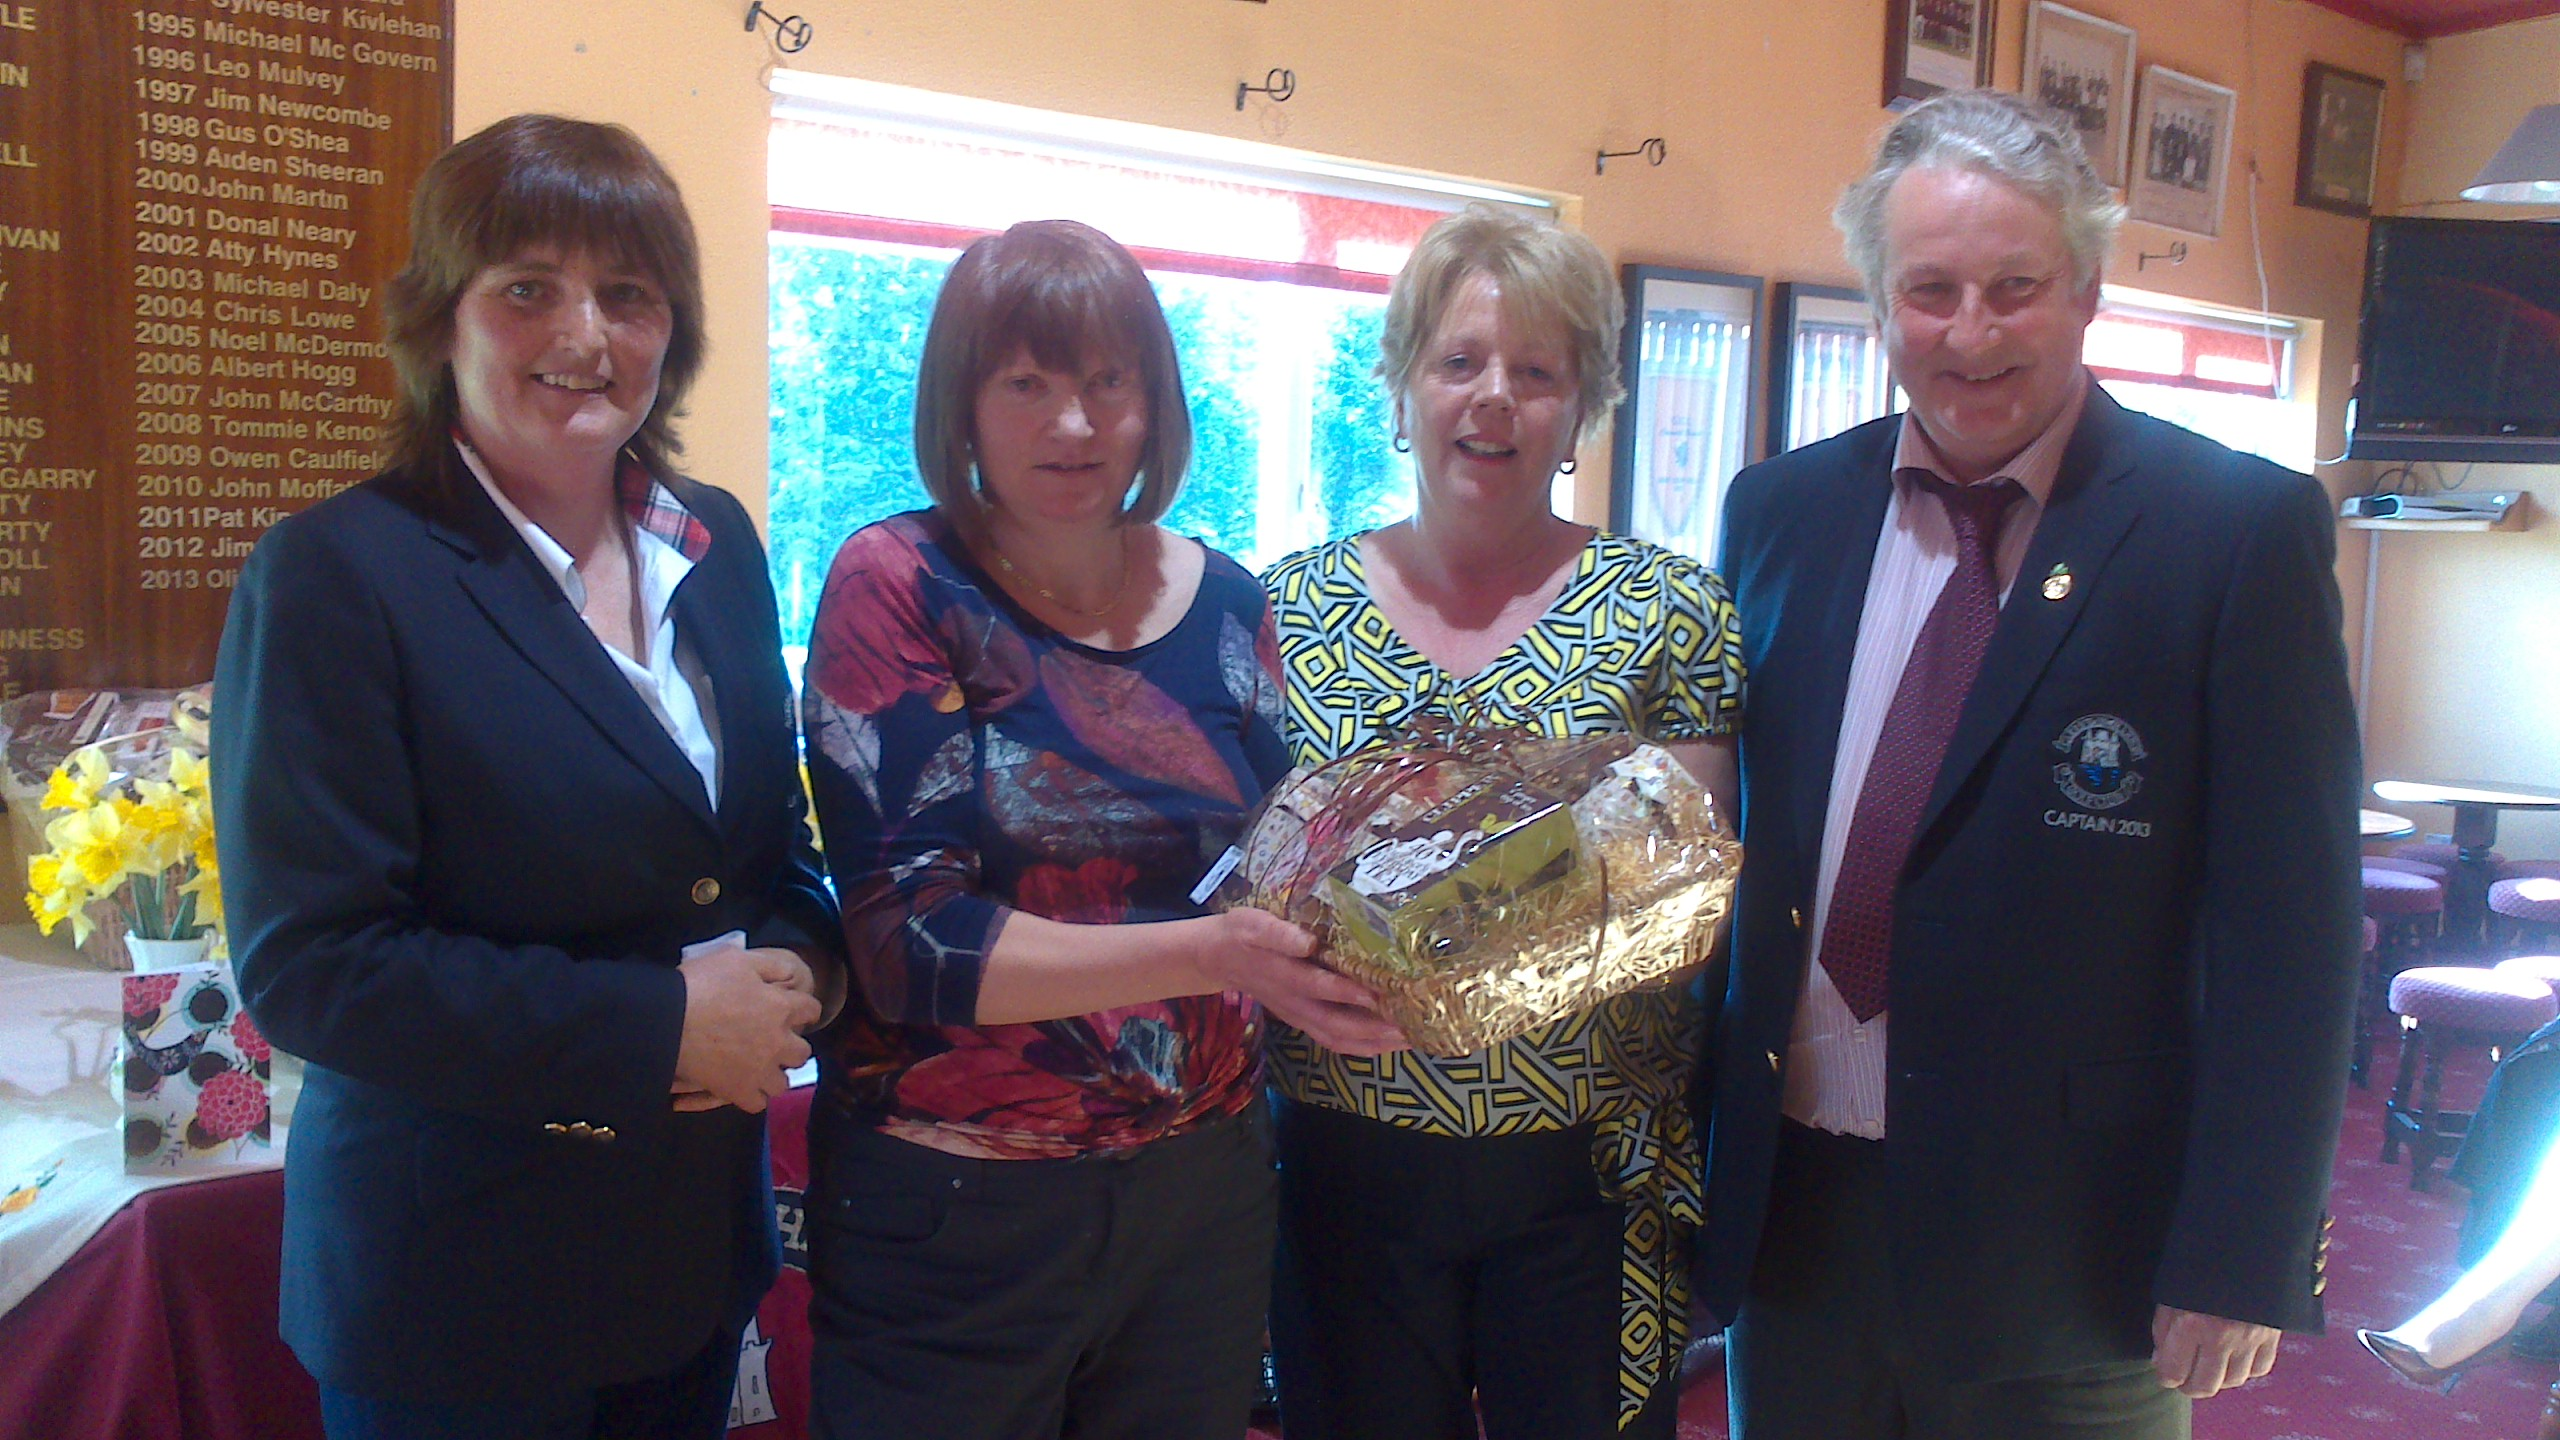 Presentation at Carrick On Shannon Golf Club. Mary Talbot presents Front 9 prize in Maria Talbot Perpetual Trophy to Mary Molloy. Picture also includes Lady Captain Dolores Mulvey and Captain Oliver Curran